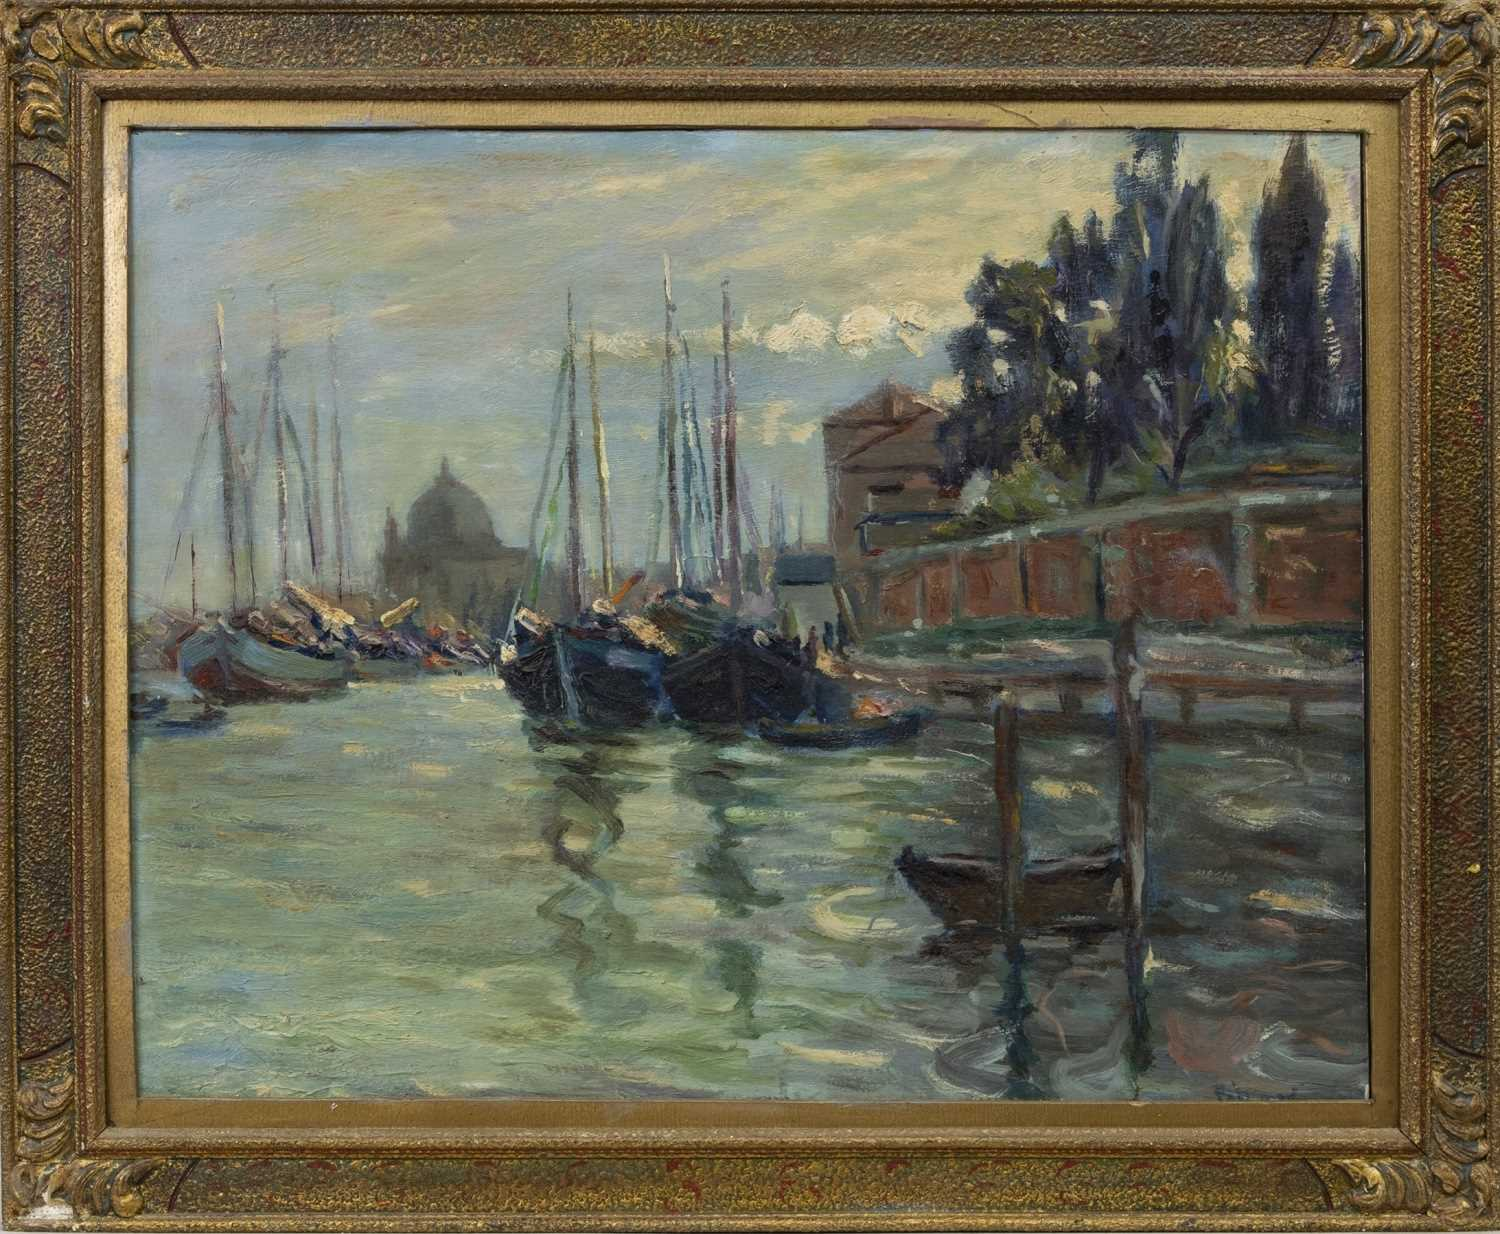 Lot 12 - VENICE, AN OIL BY AGNES TROTTER FALCONER